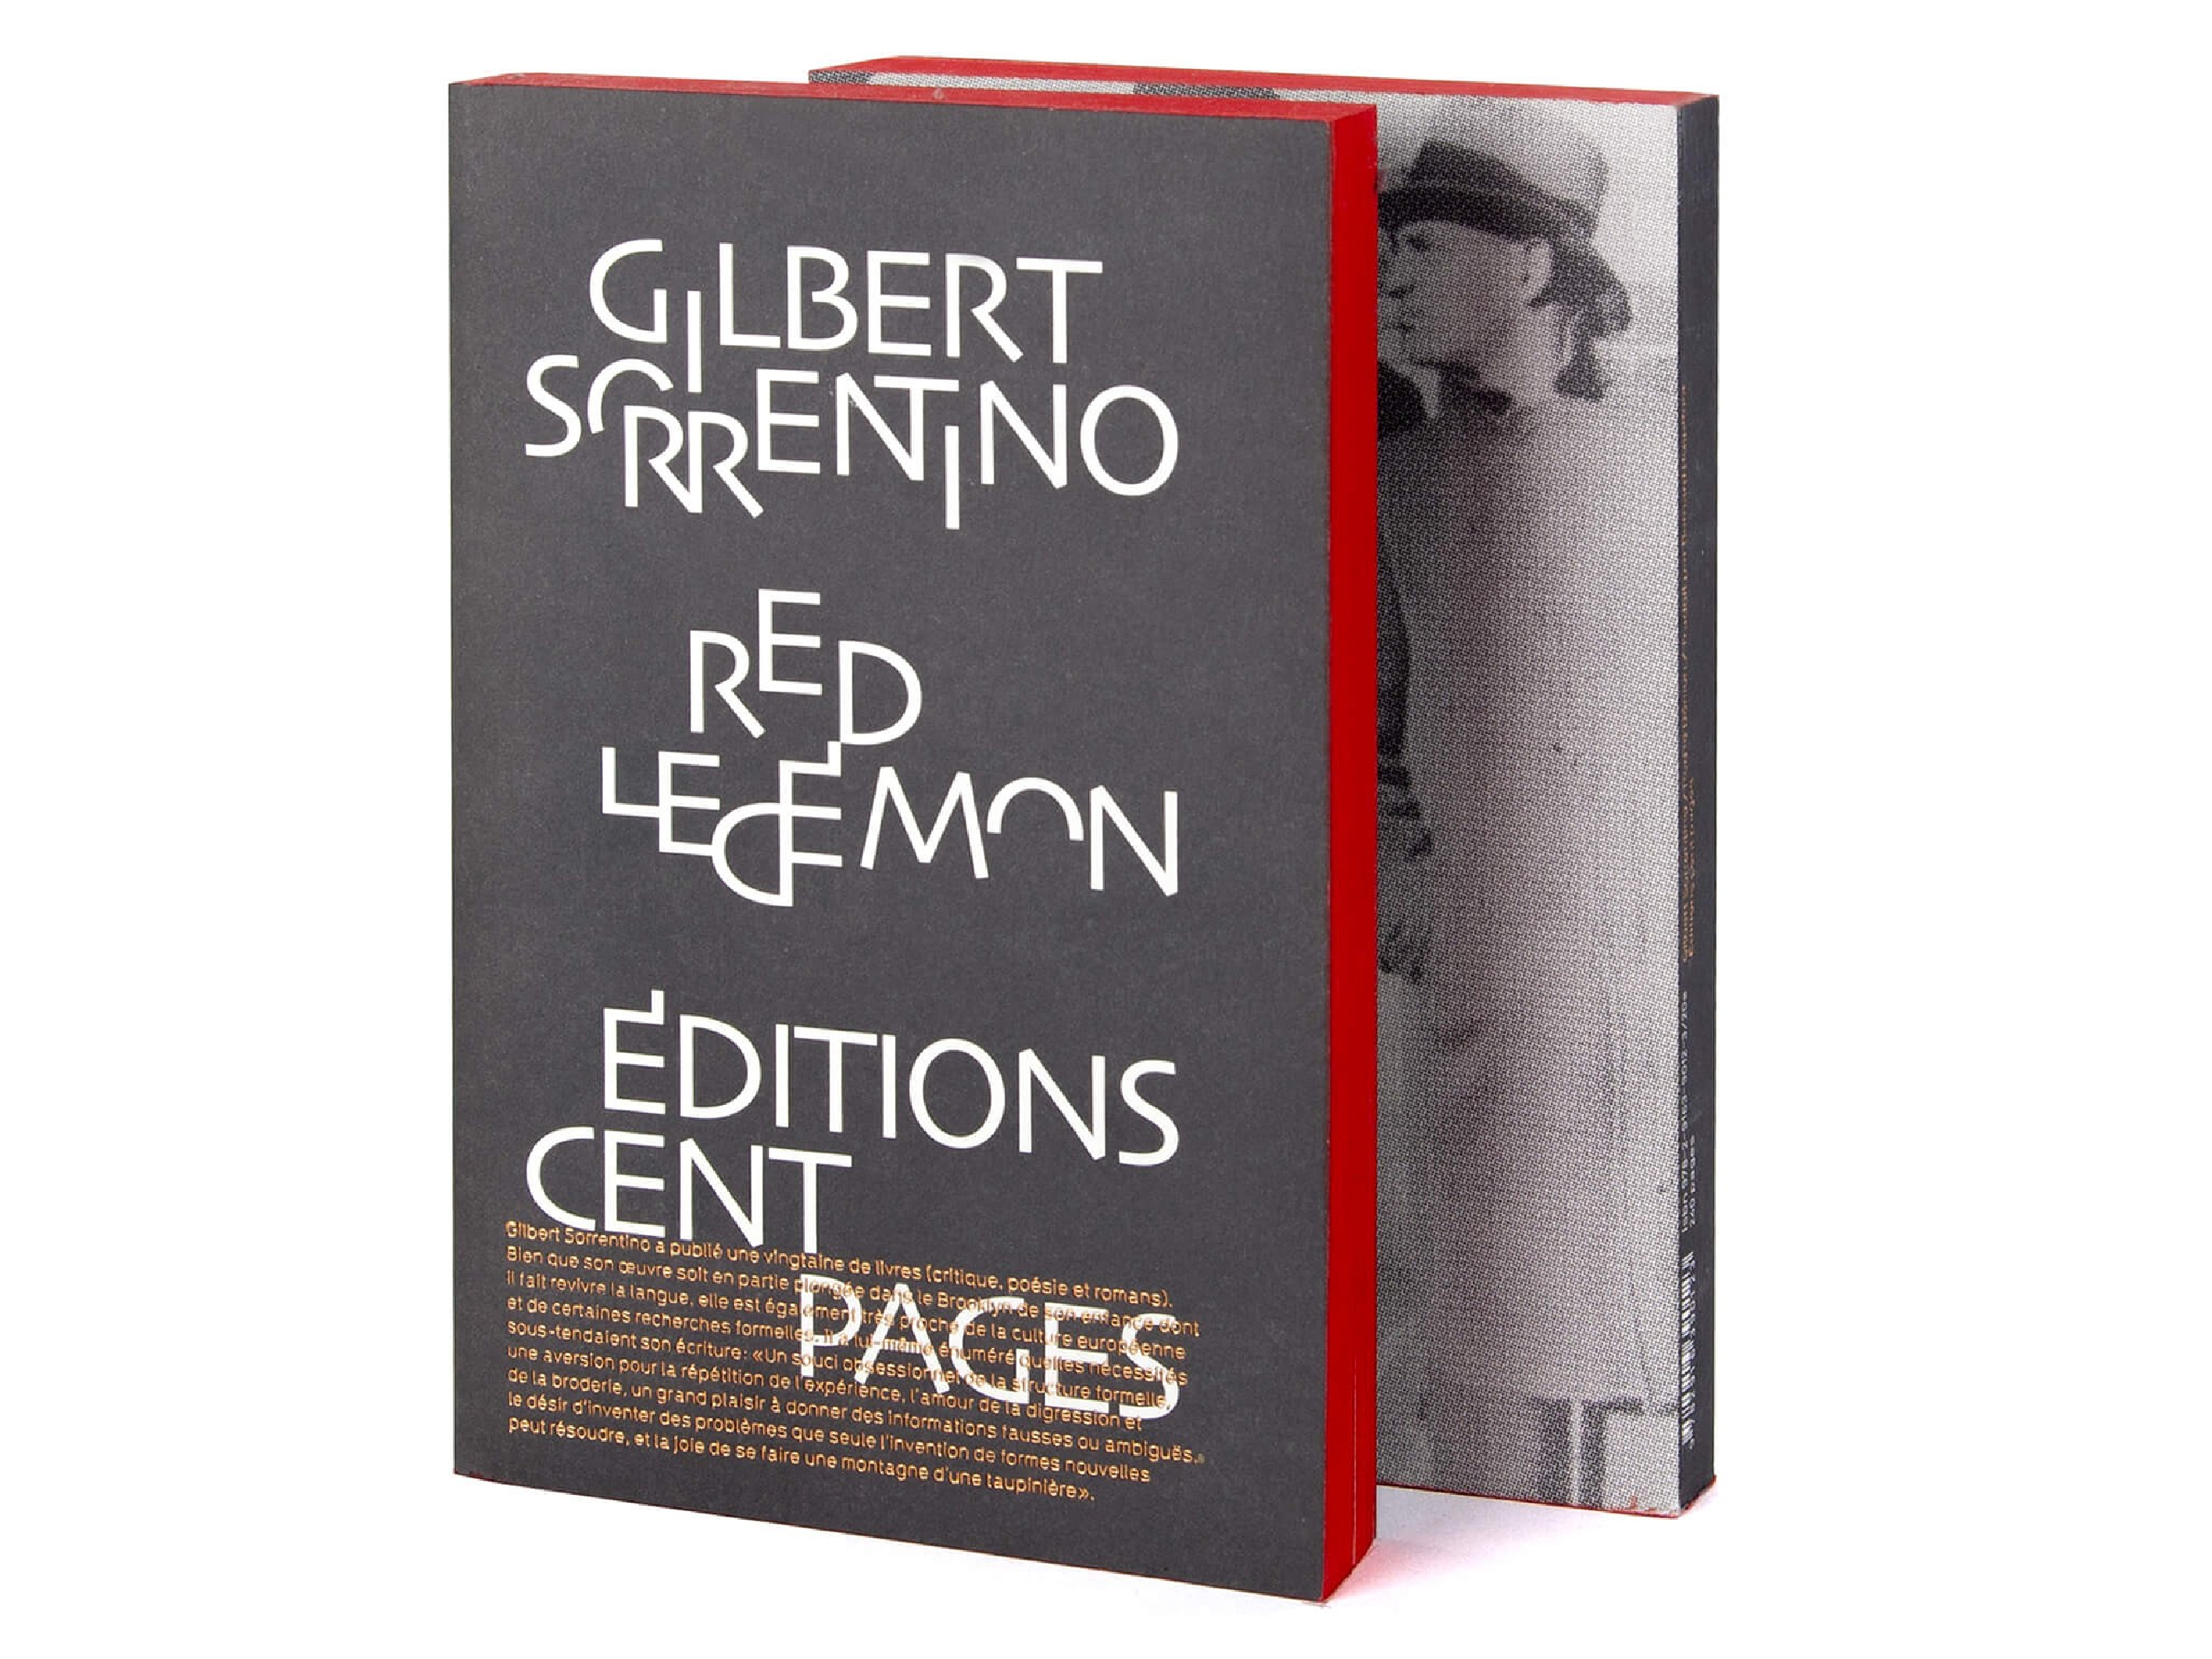 Gilbert Sorrentino Red le démon Éditions cent pages collection Rouge-Gorge traduction Bernard Hœpffner Couverture